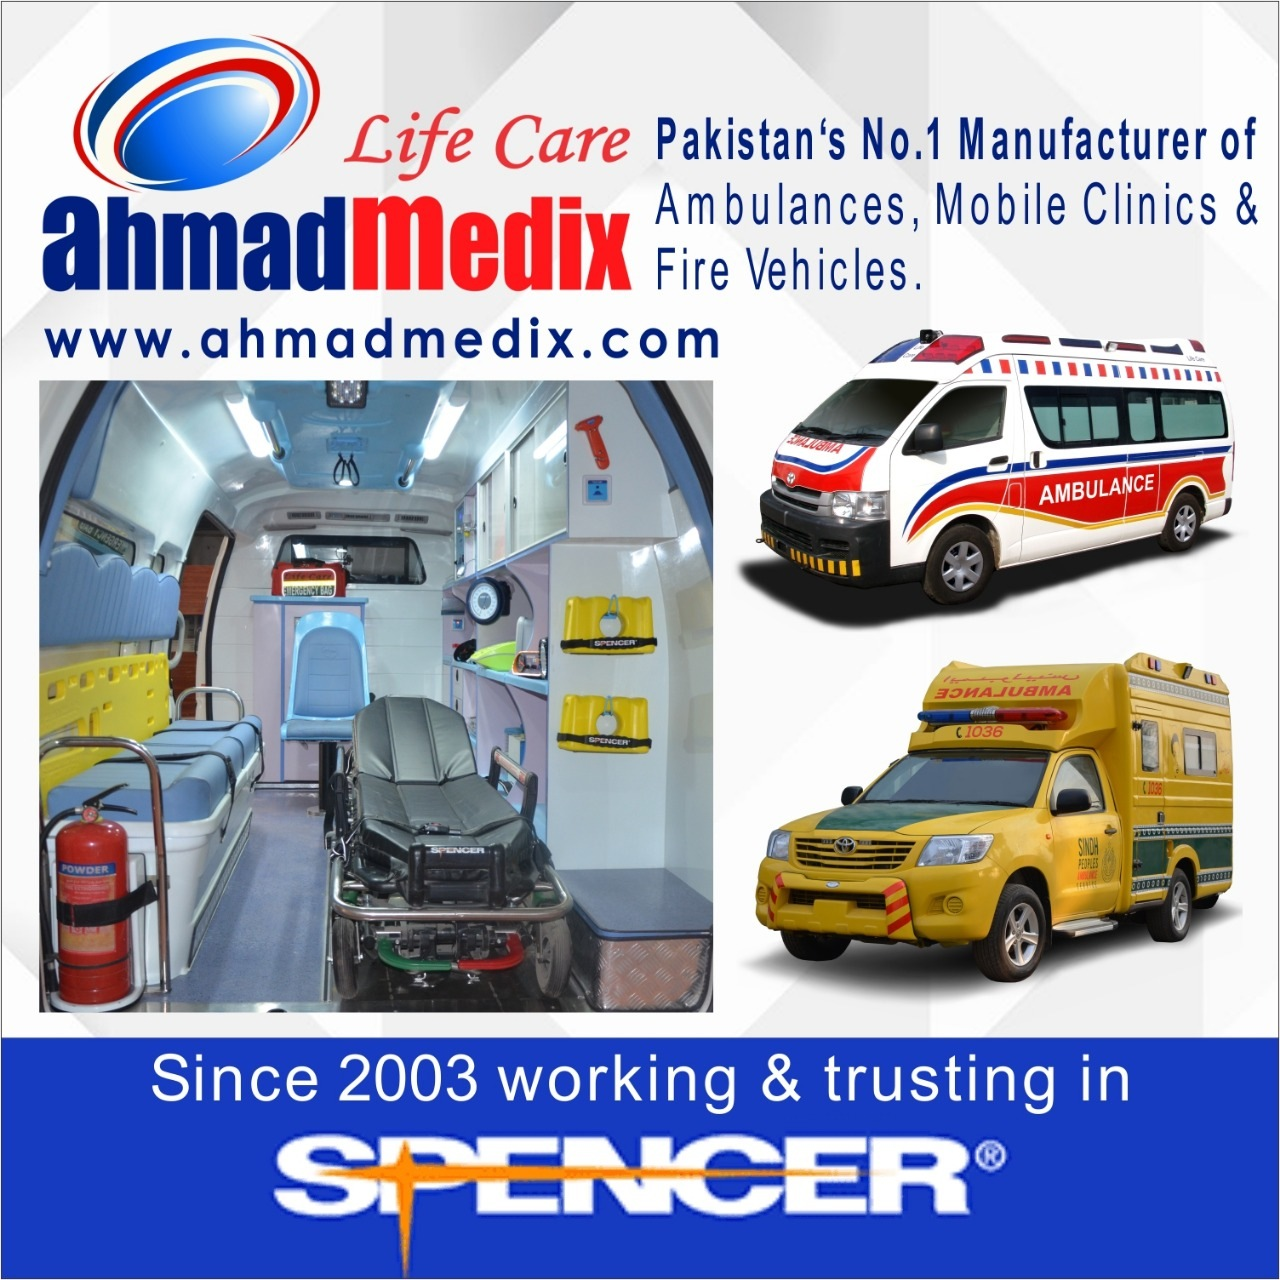 SPENCER PARTNER  -  AHMAD MEDIX